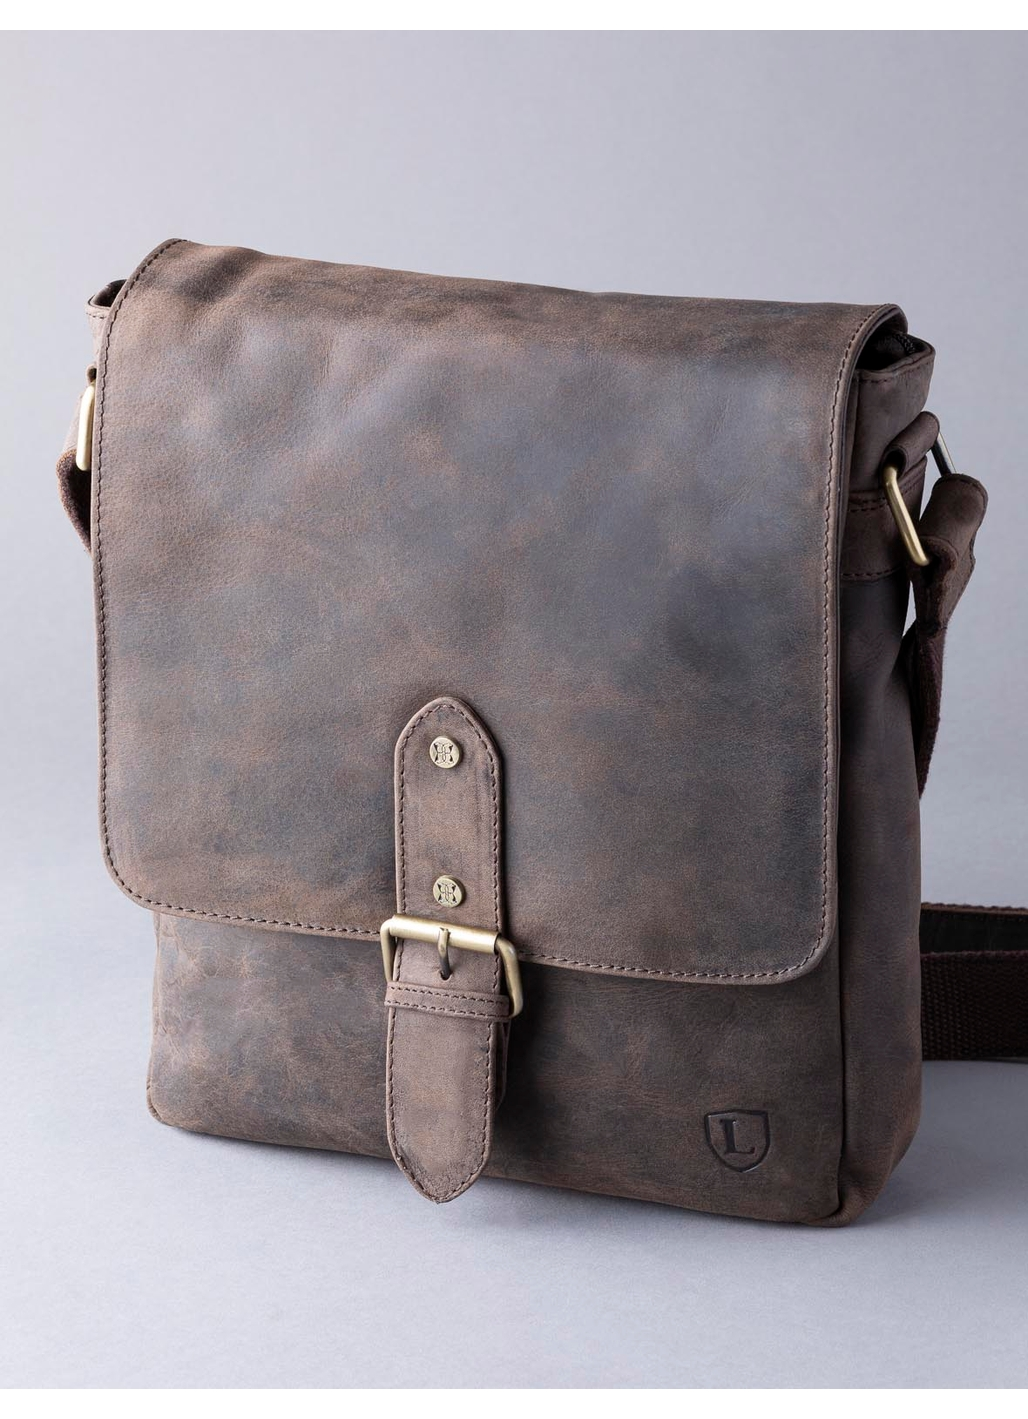 Hunter Leather Messenger Bag in Chocolate Brown